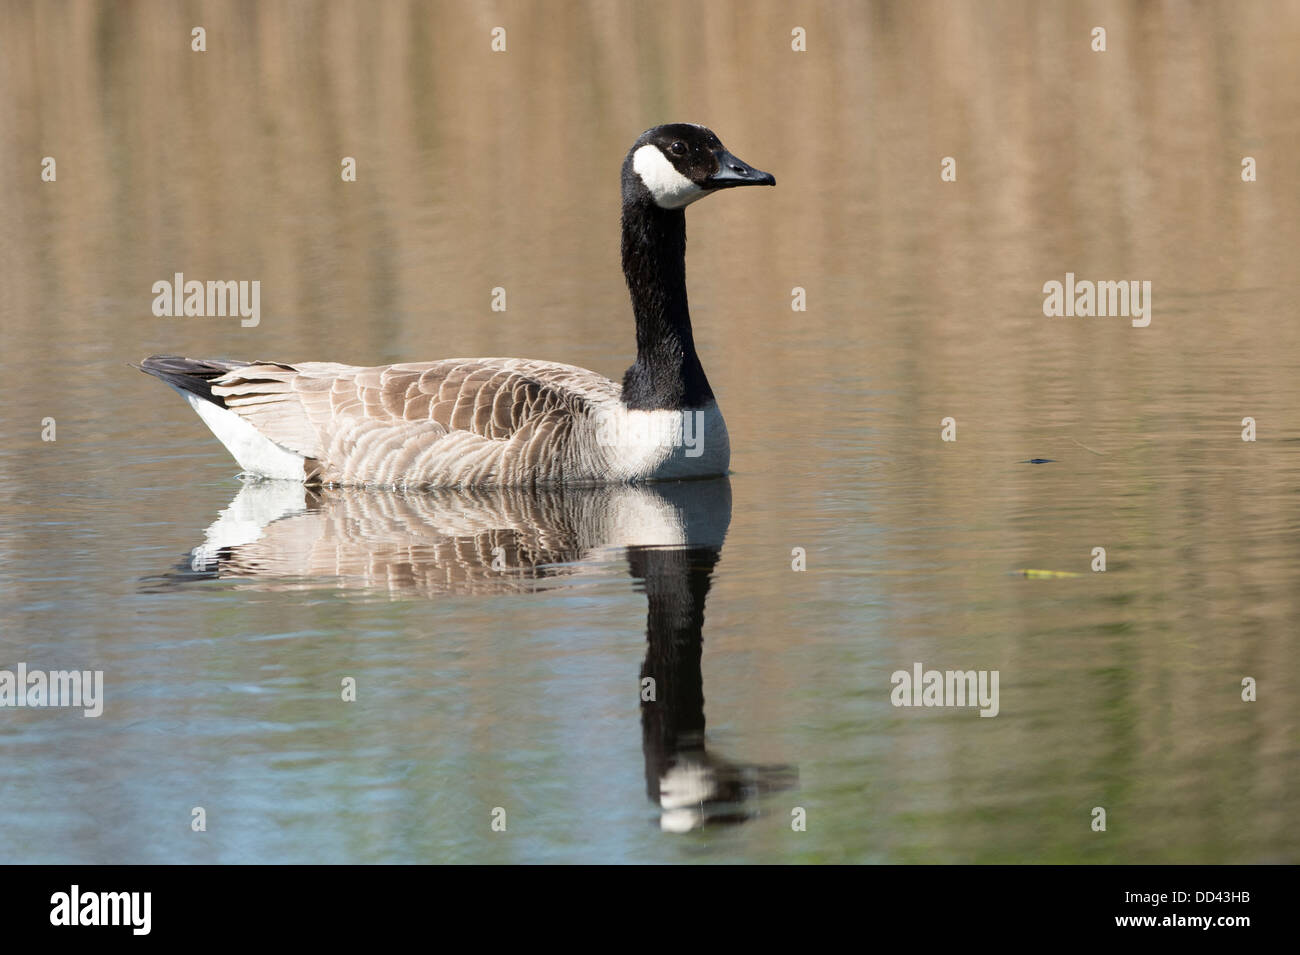 A Canada Goose swimming on a lake - Stock Image